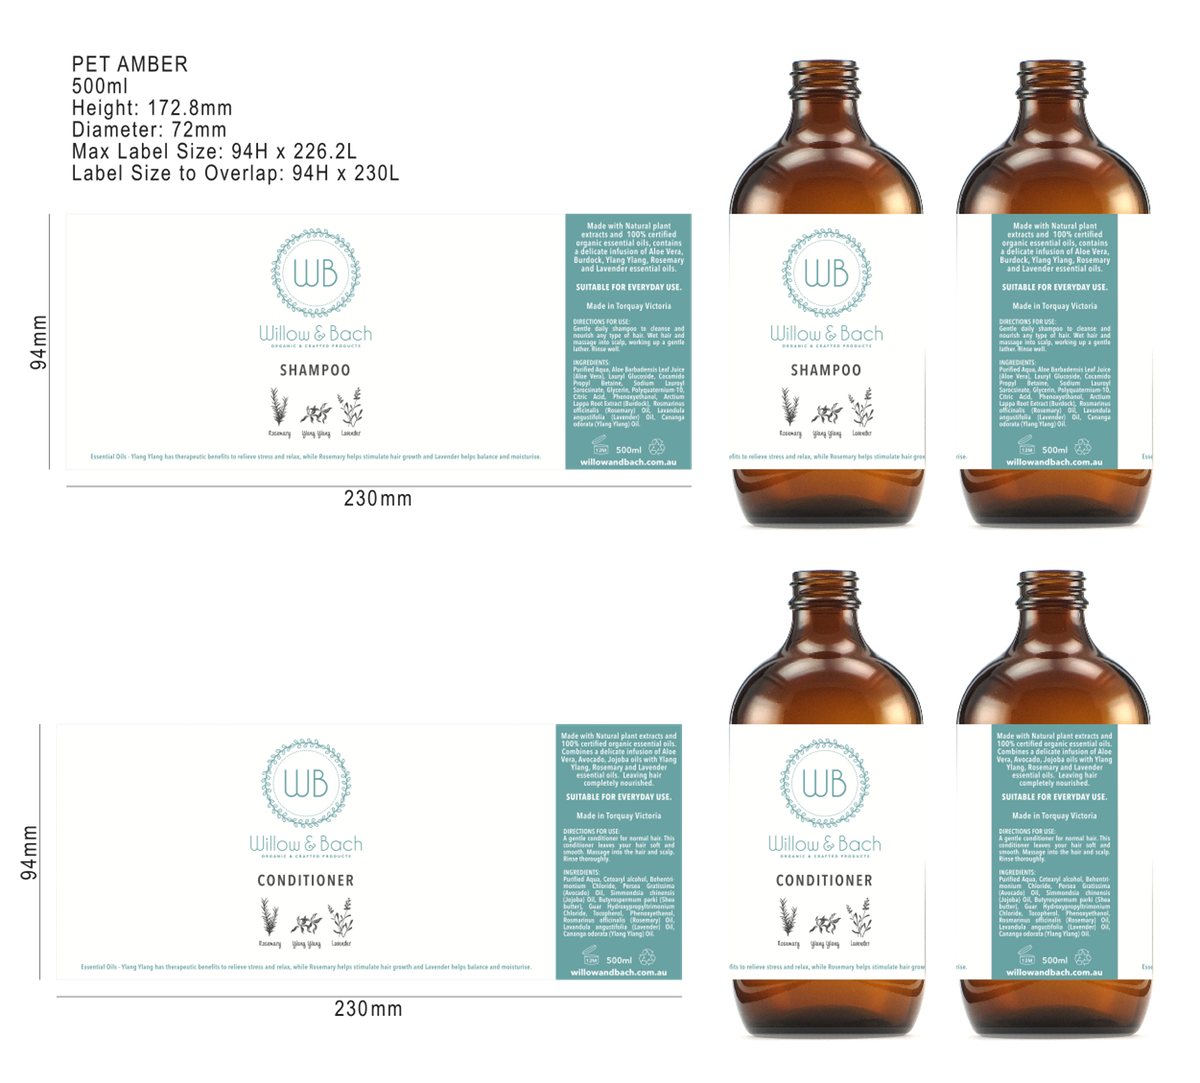 Design a new label for a new product